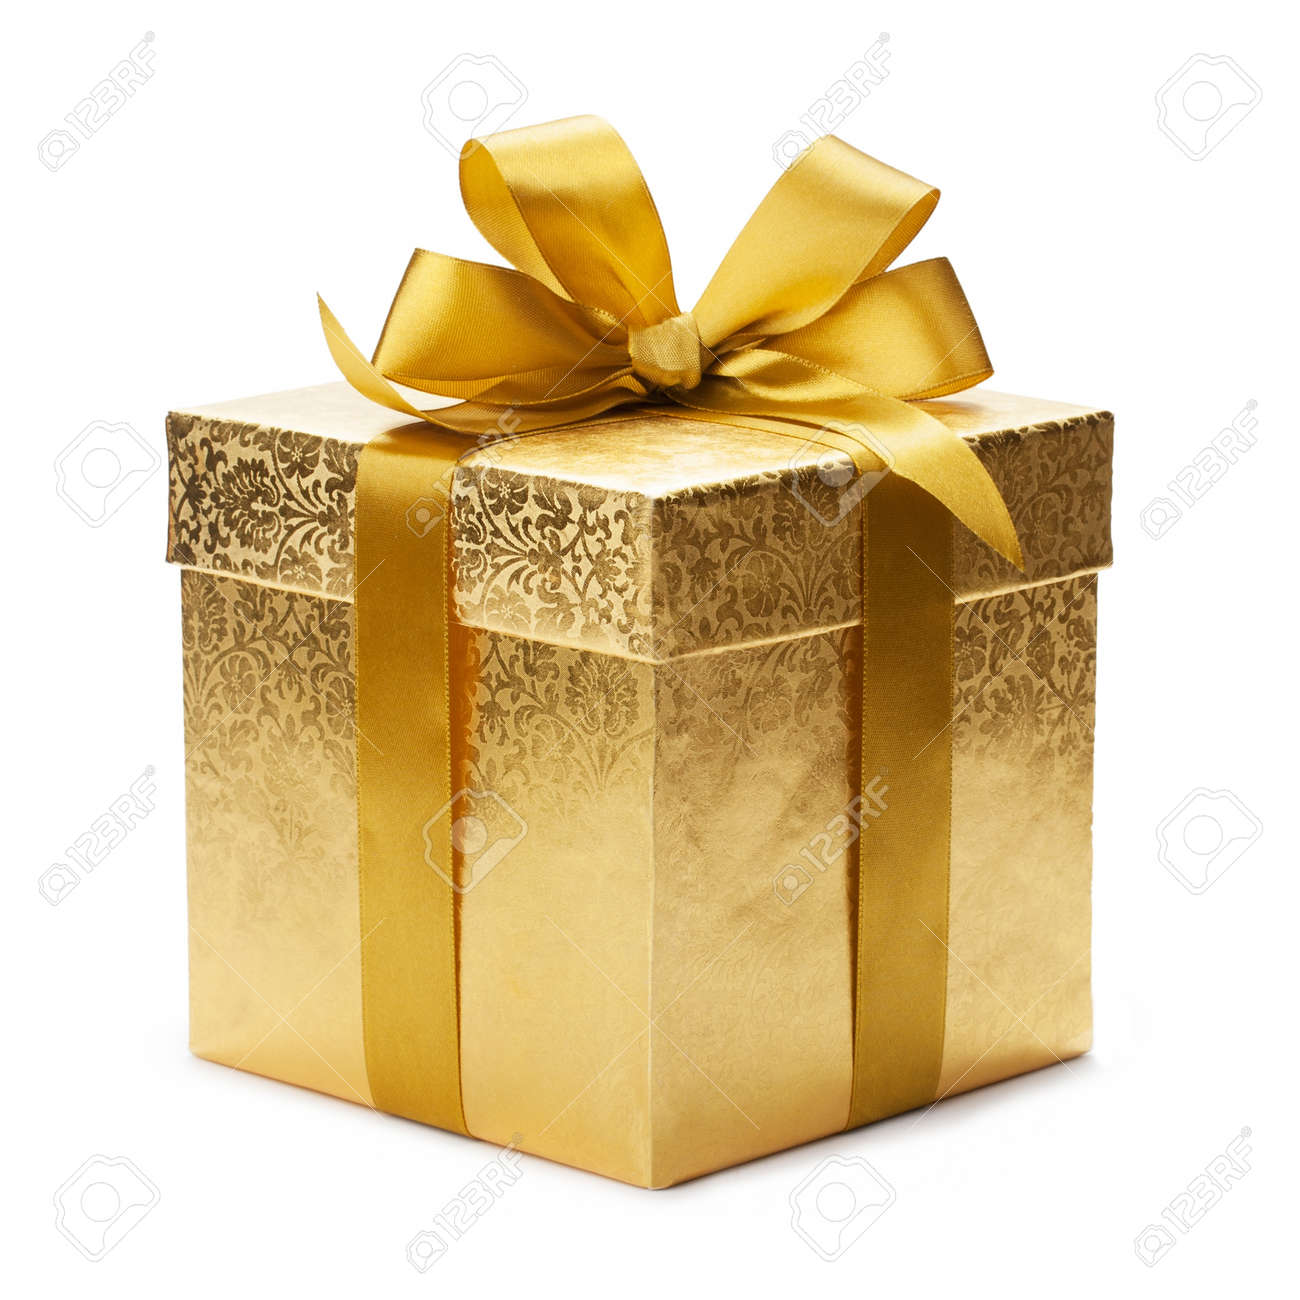 Gift box and gold ribbon isolated on white background stock photo gift box and gold ribbon isolated on white background stock photo 20451784 negle Choice Image